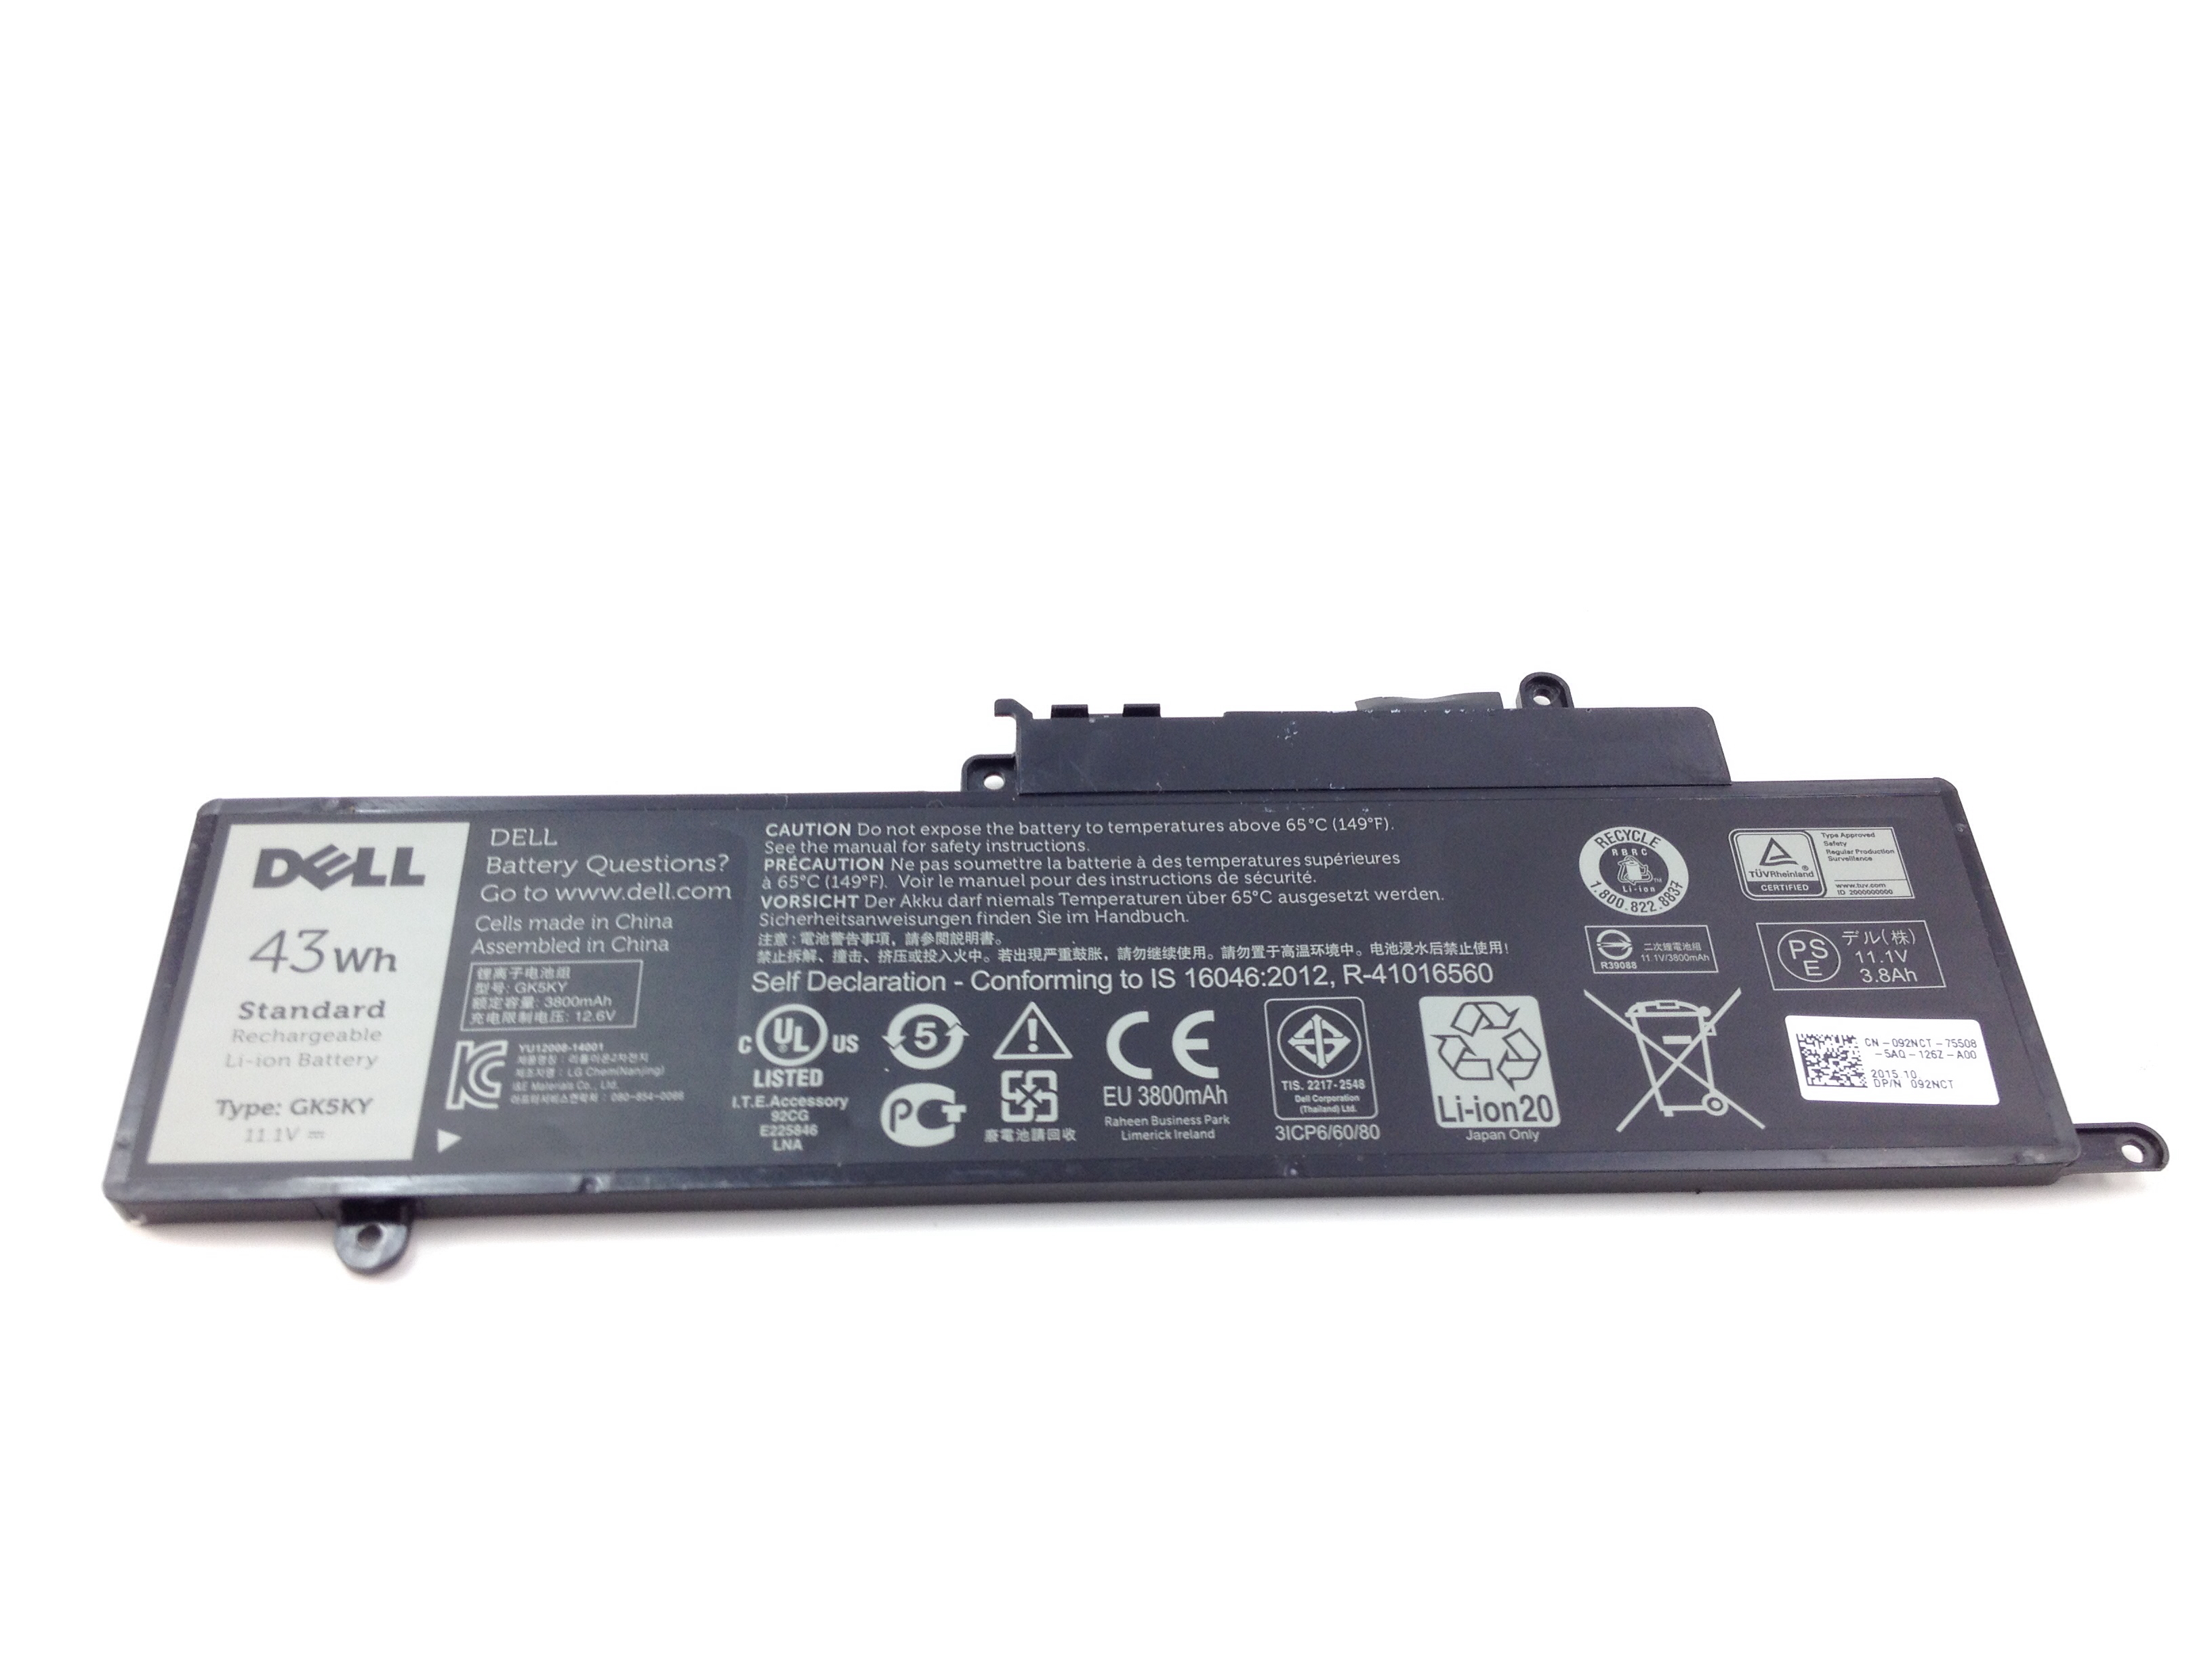 Dell Inspiron 43Wh 11.1V Li-Ion Battery (092NCT)